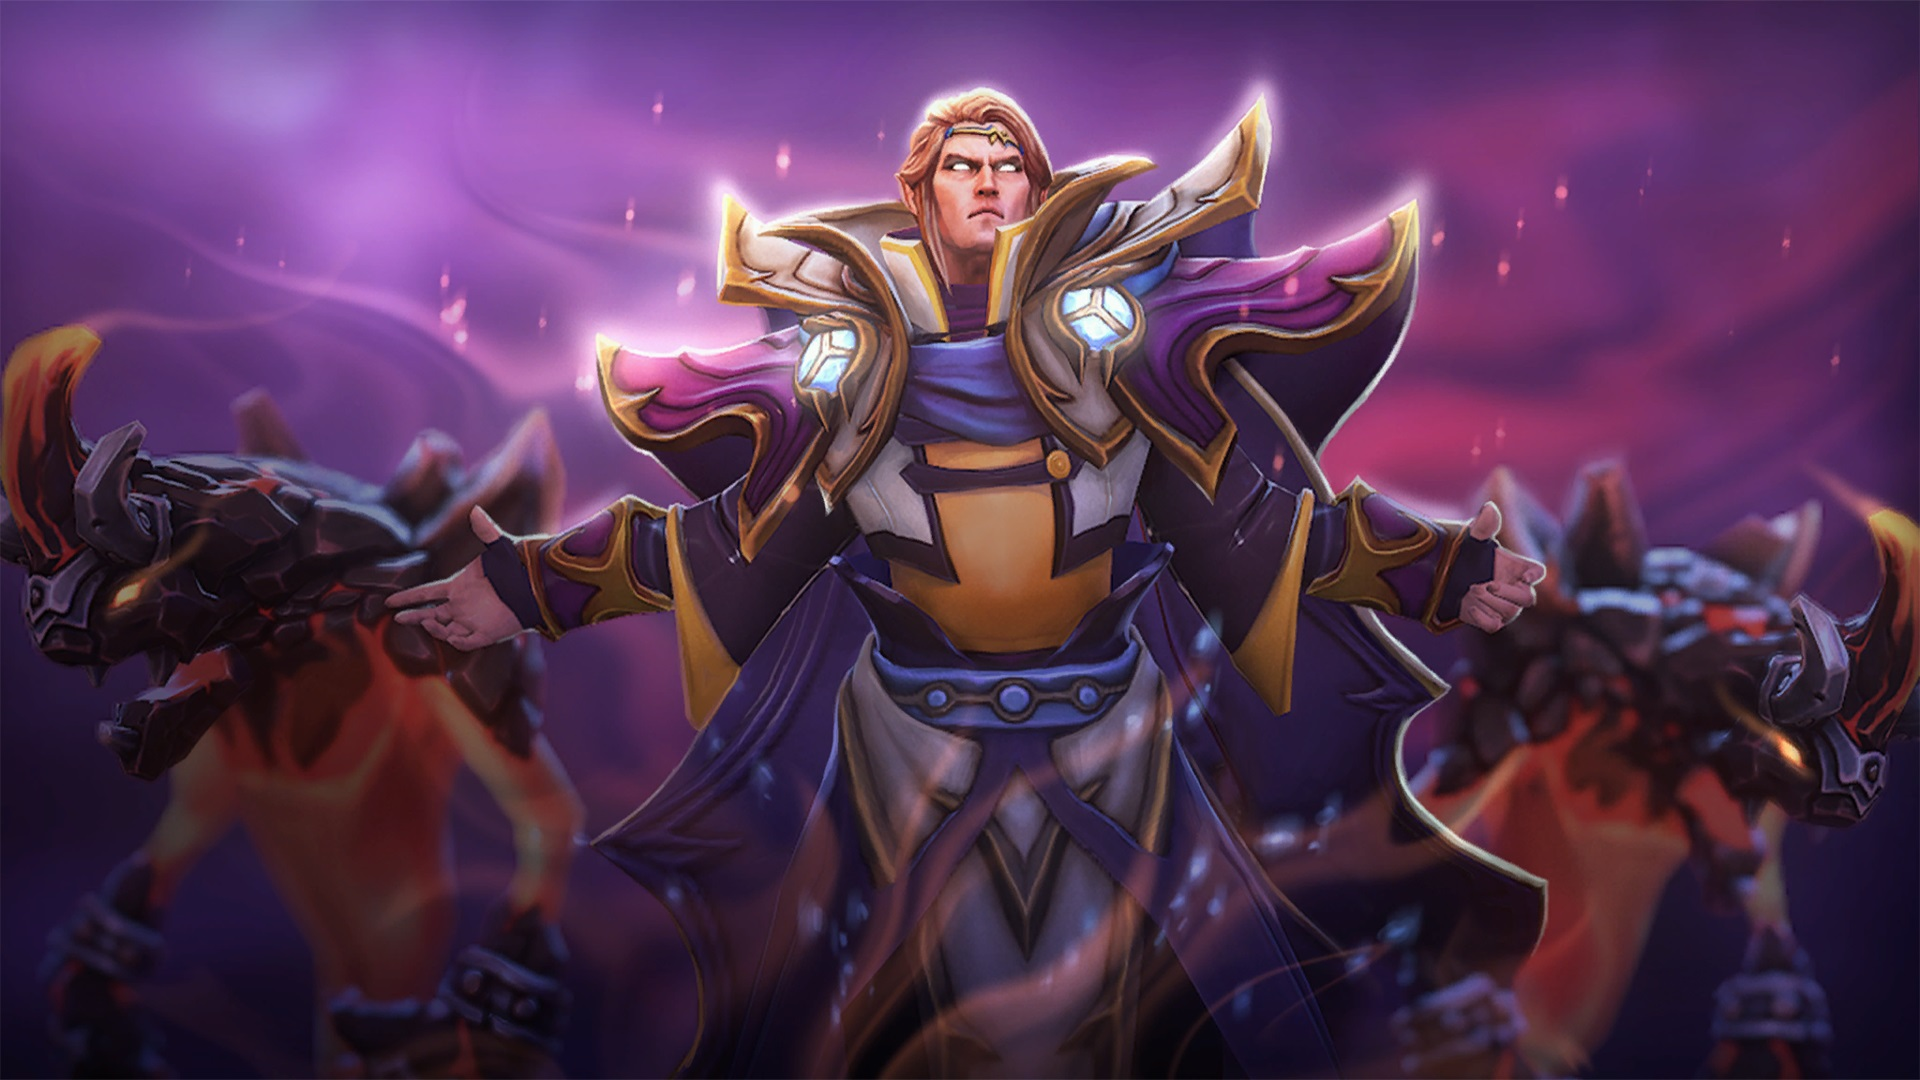 Invoker Cadenza Magic Master Dota 2 desktop computers Wallpapers 1920x1080